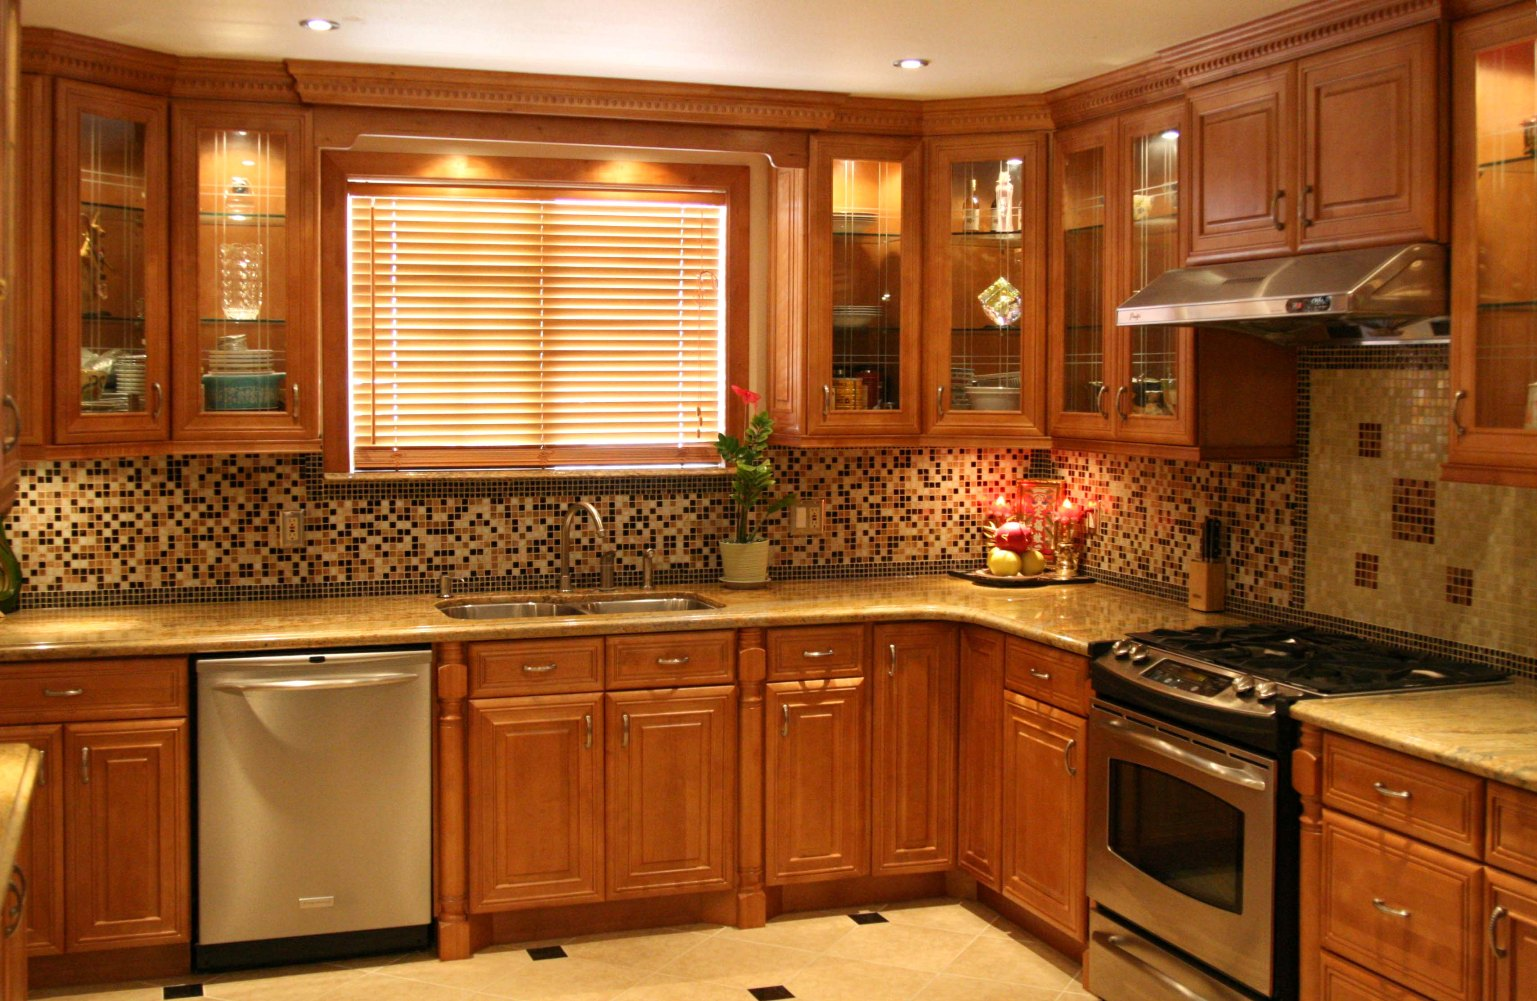 cupboards for kitchens uplift the look of the kitchen area with stylish kitchen cupboards BSMLTGL